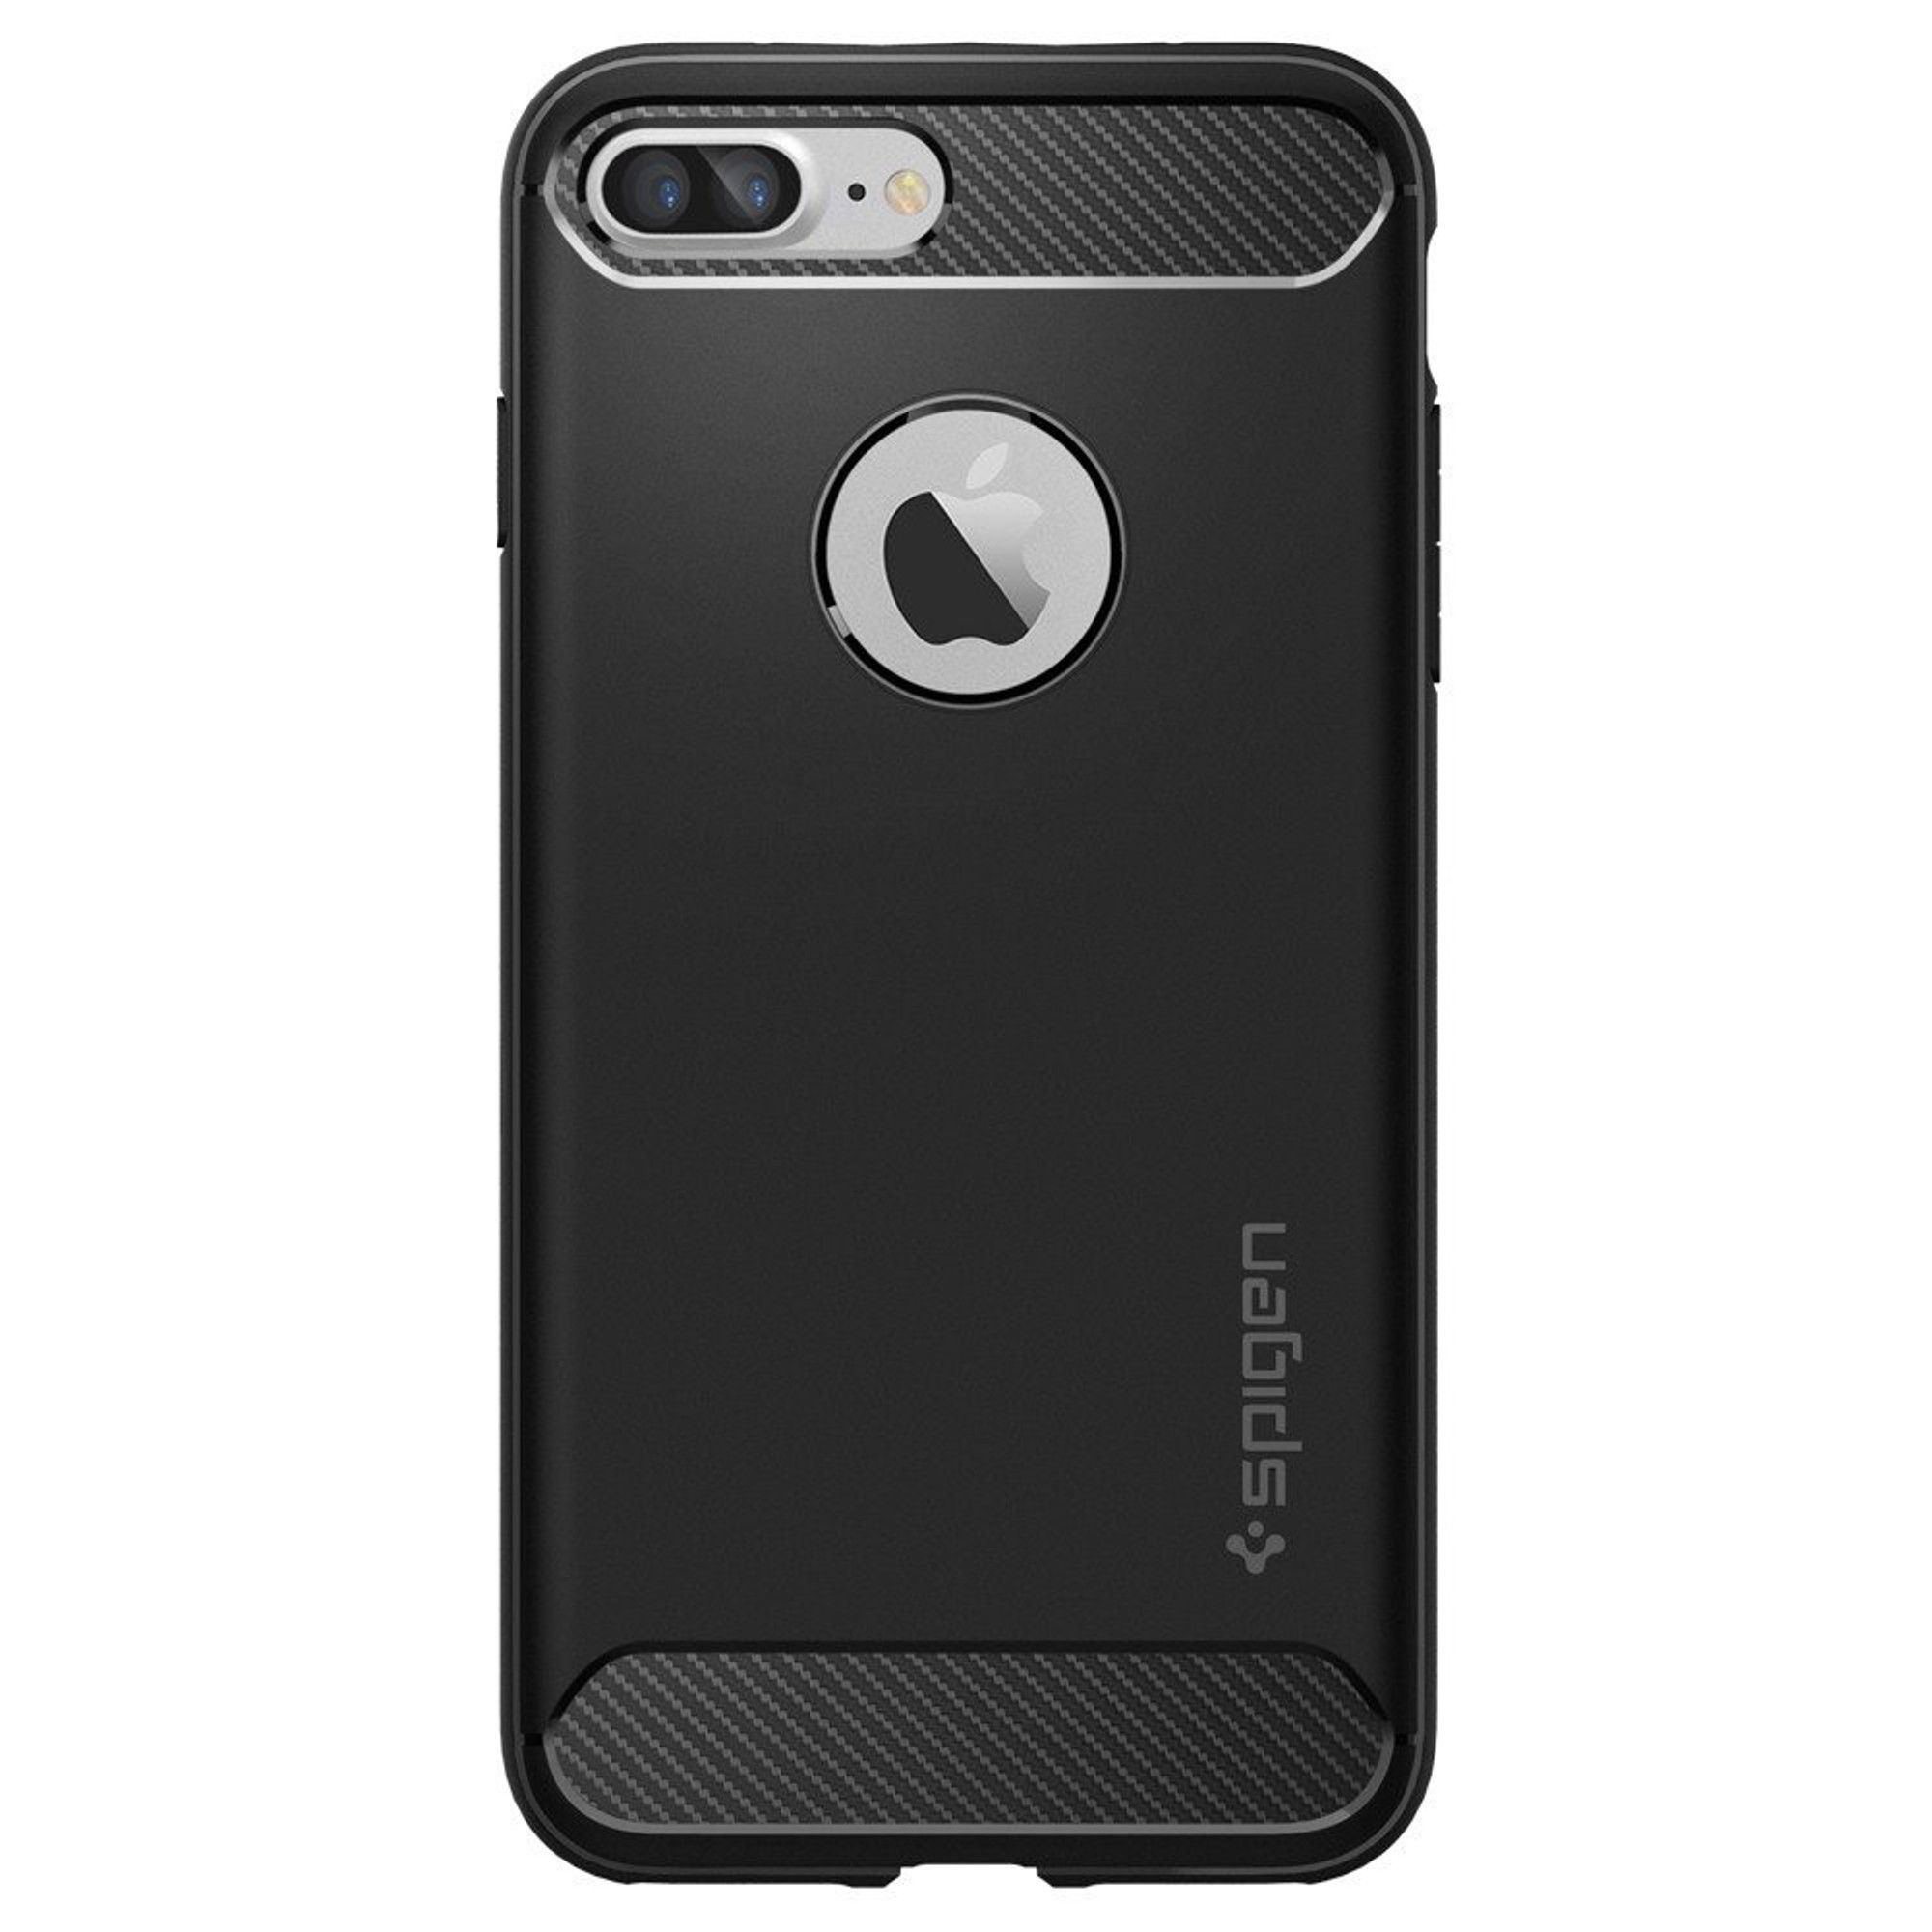 new styles 950ea 3362a Spigen Rugged Armor Case for iPhone 7 Plus - Black